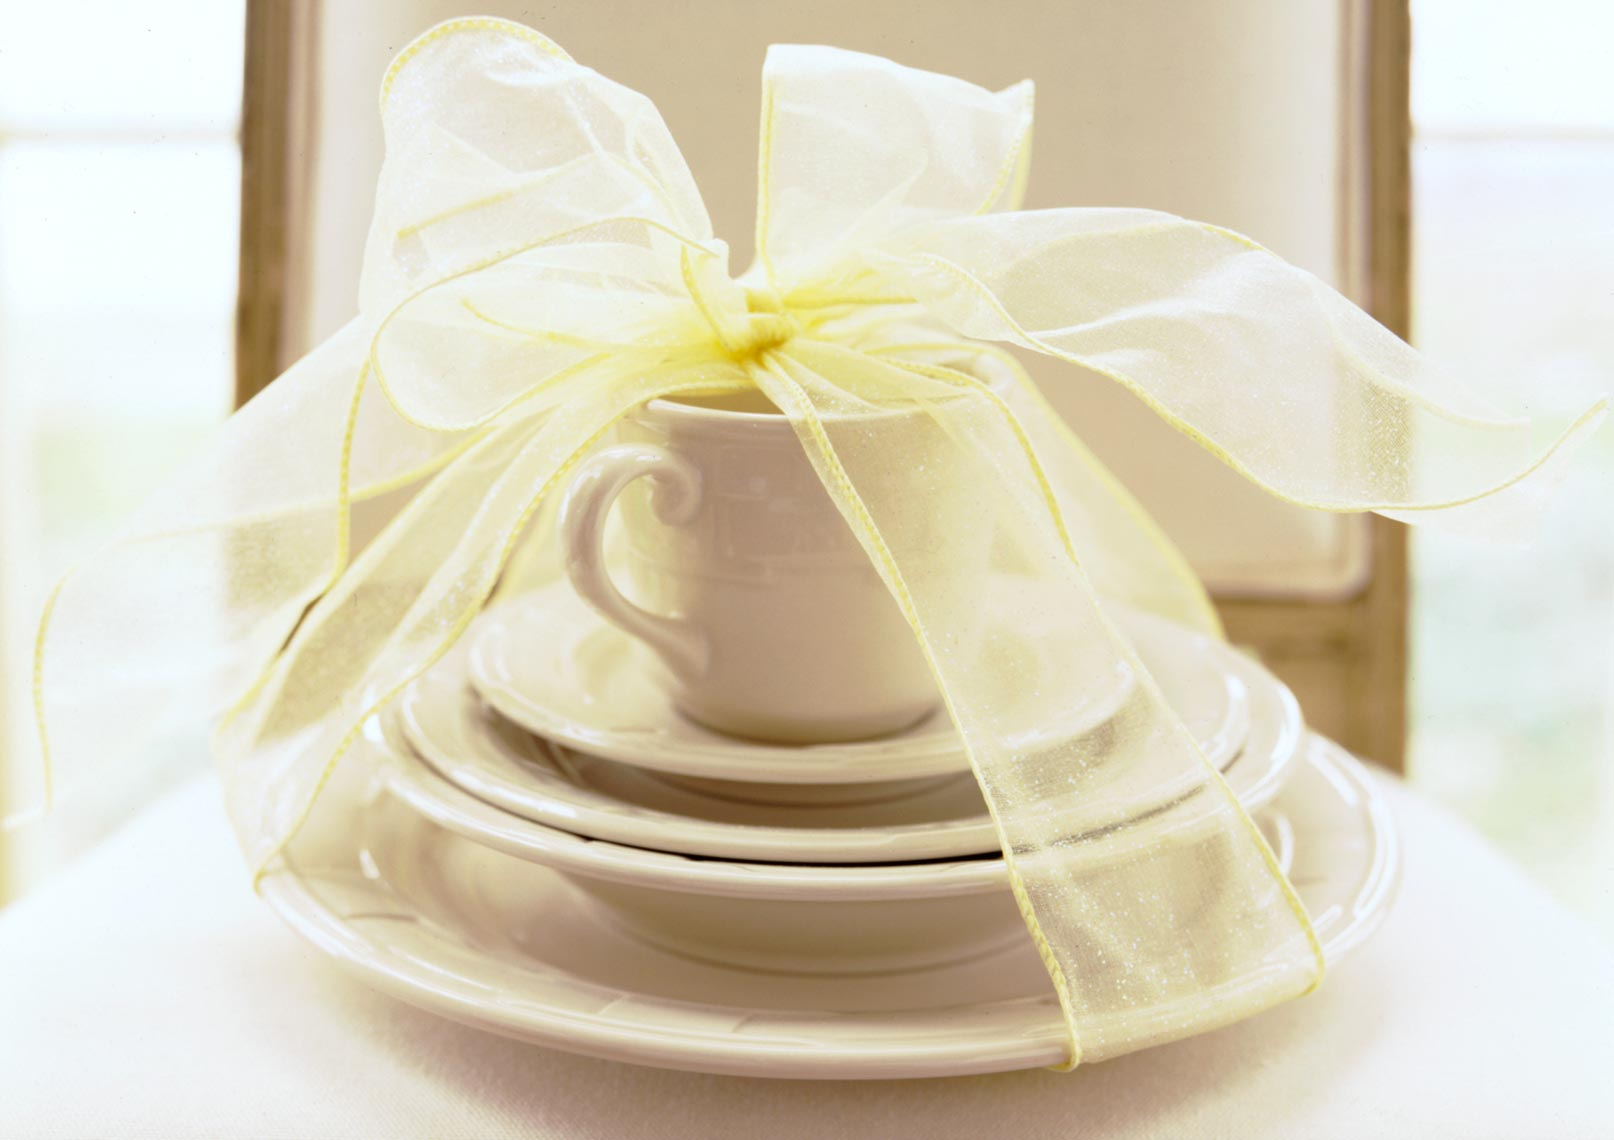 Dish set with yellow ribbon on top